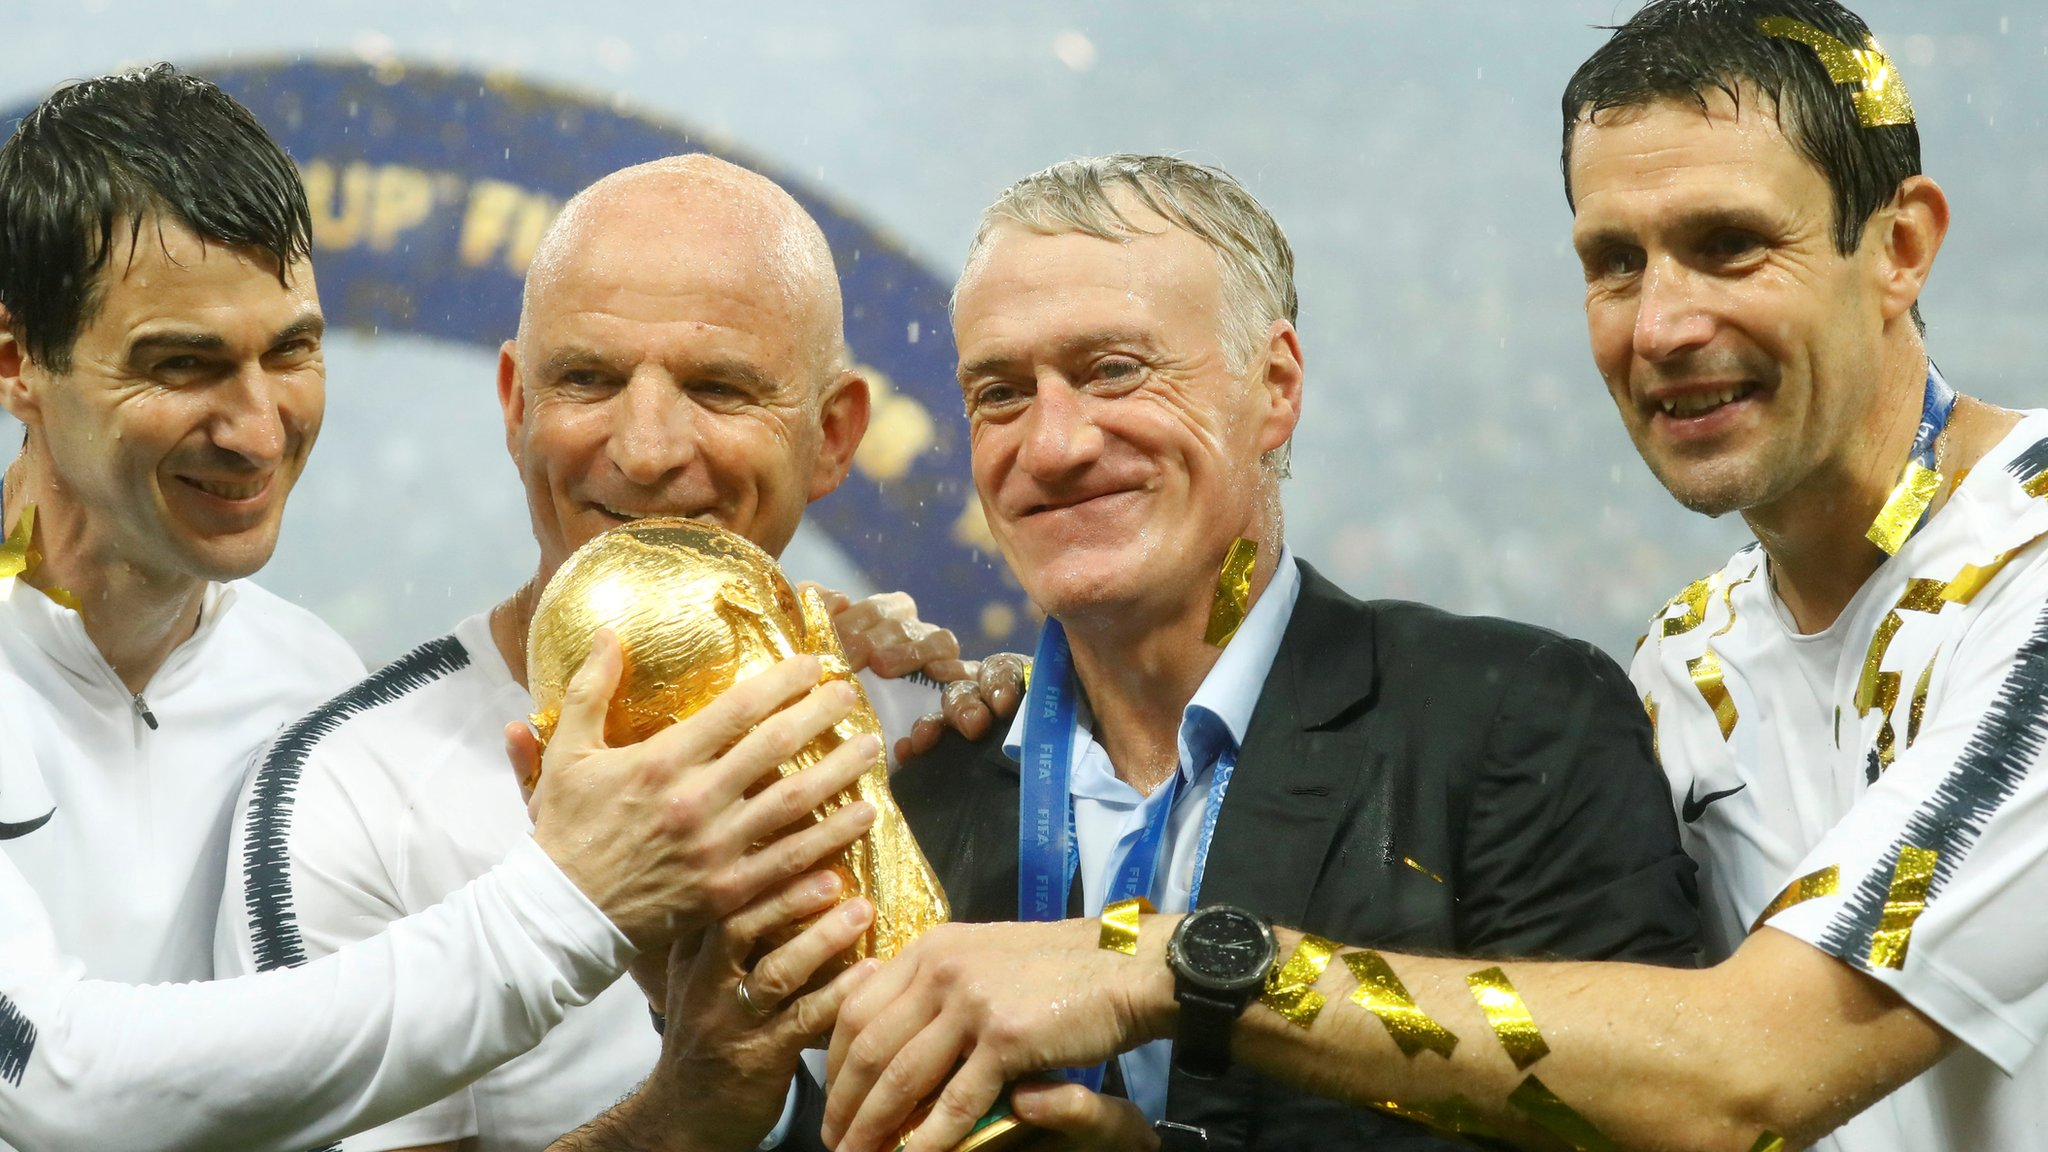 World Cup win is 'supreme coronation' - France boss Deschamps